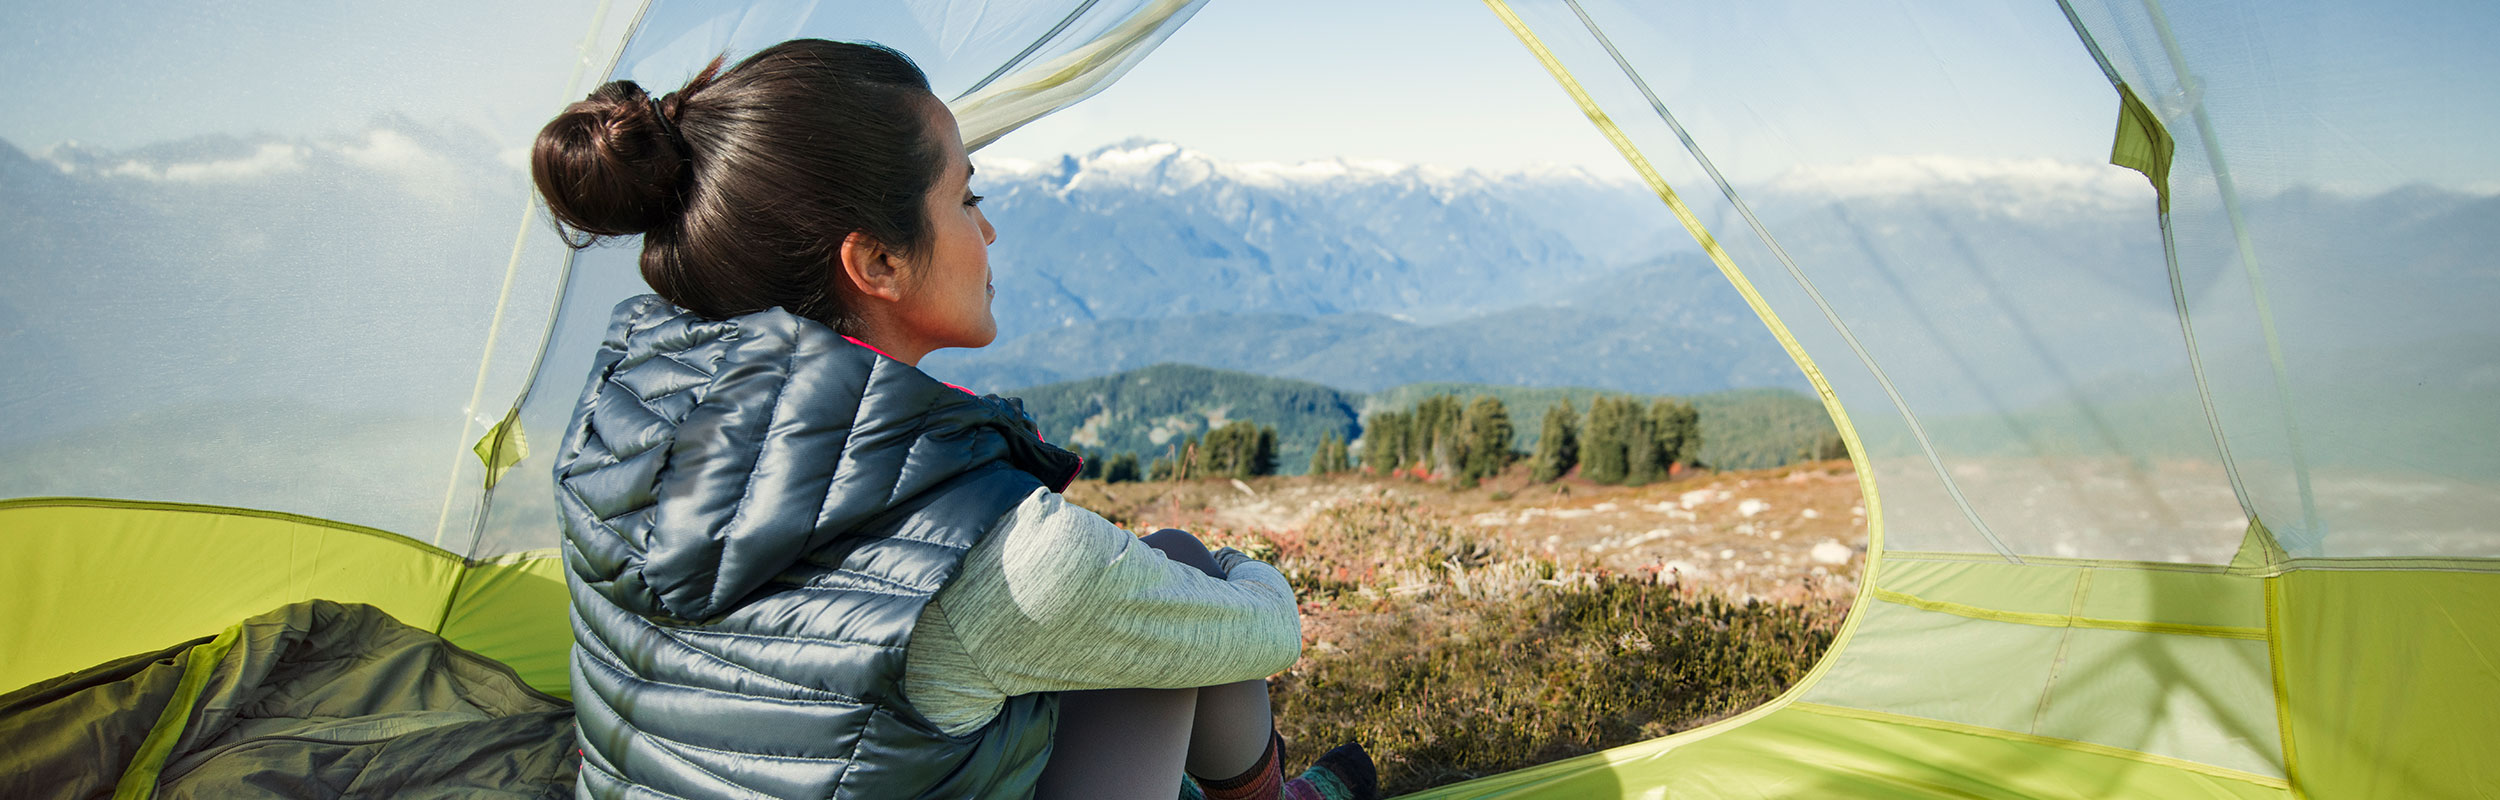 A woman looks at a view of mountains from inside a tent